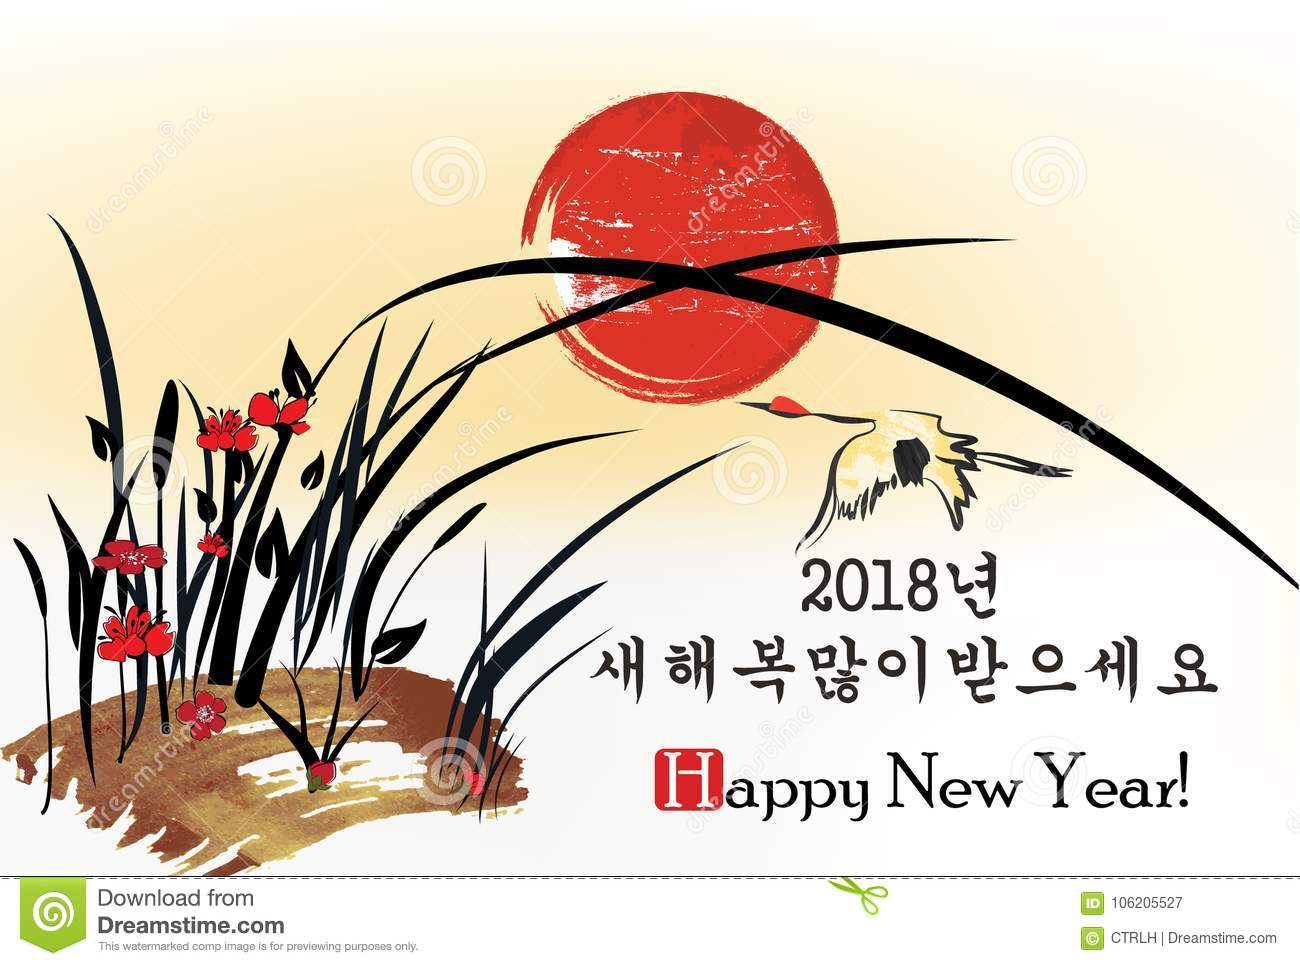 korean greeting card for the new year 2018 celebration